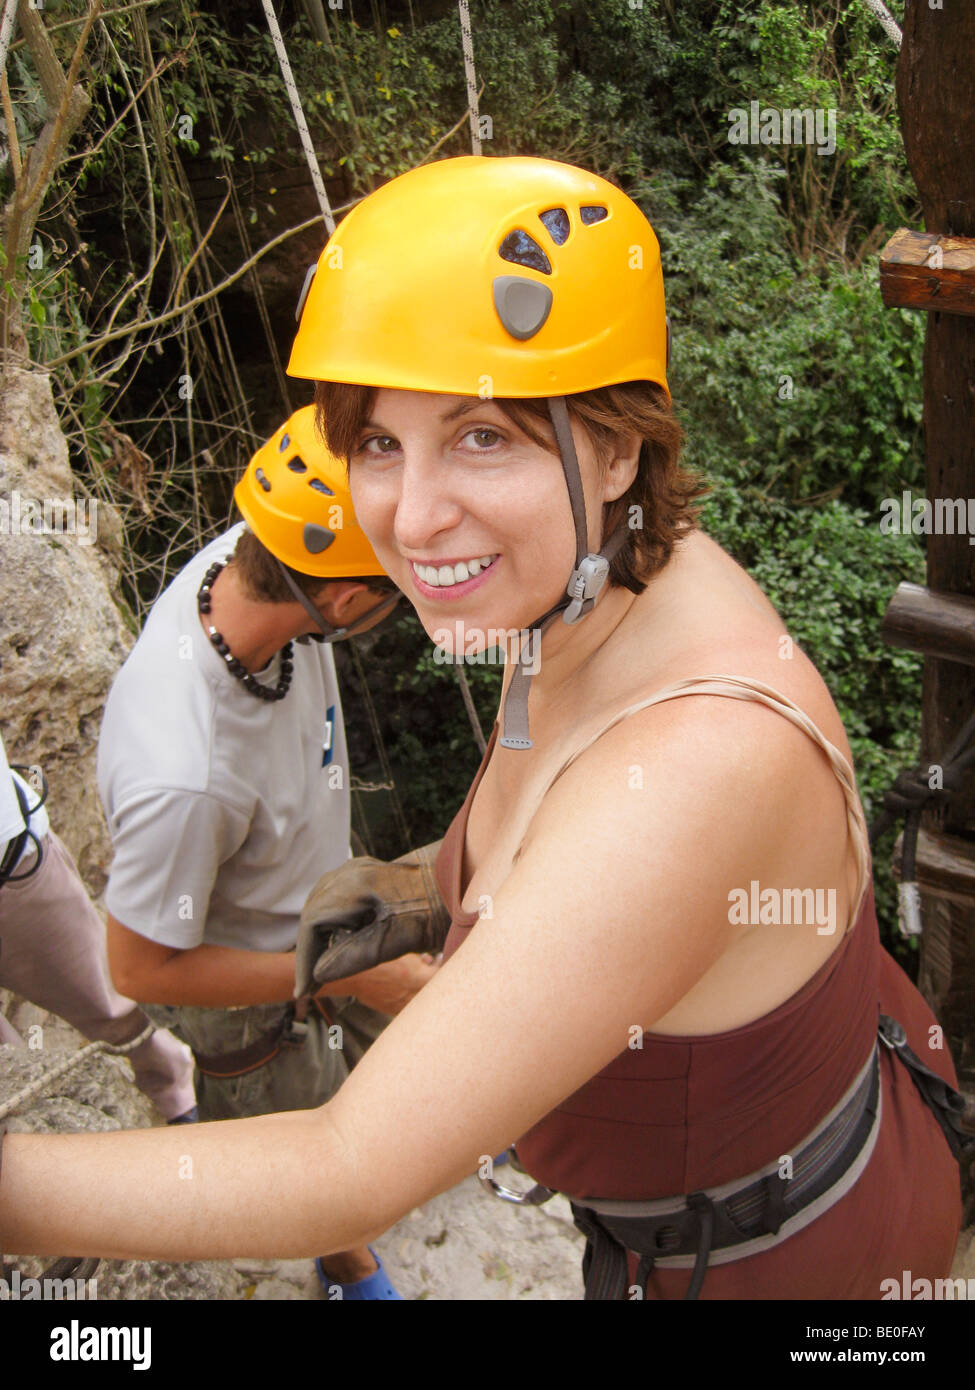 Middle aged adult woman doing outdoor activities waiting for a zip line and wearing a helmet - Stock Image